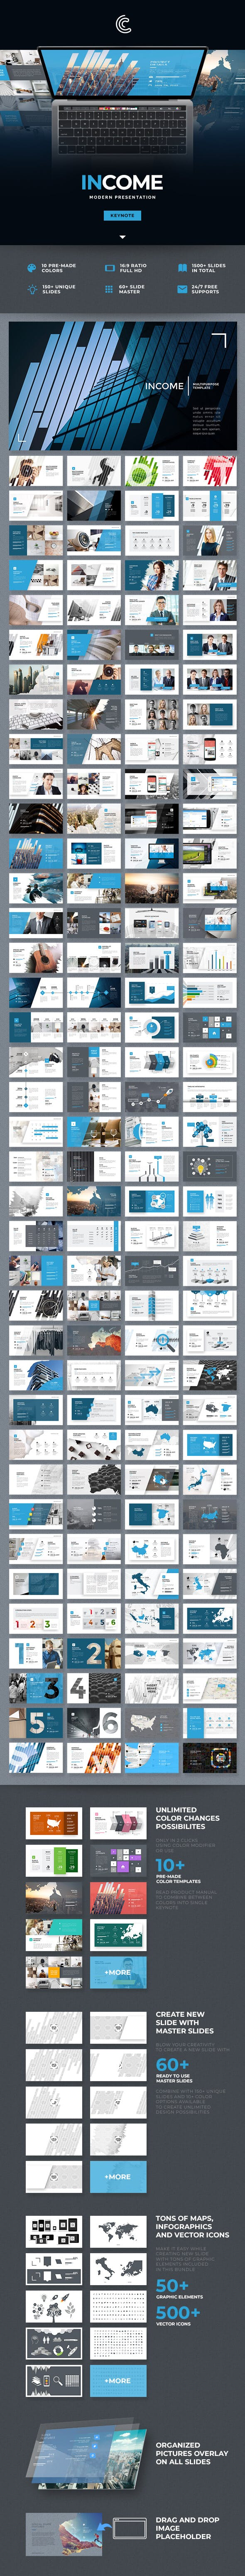 income powerpoint by alitolama graphicriver